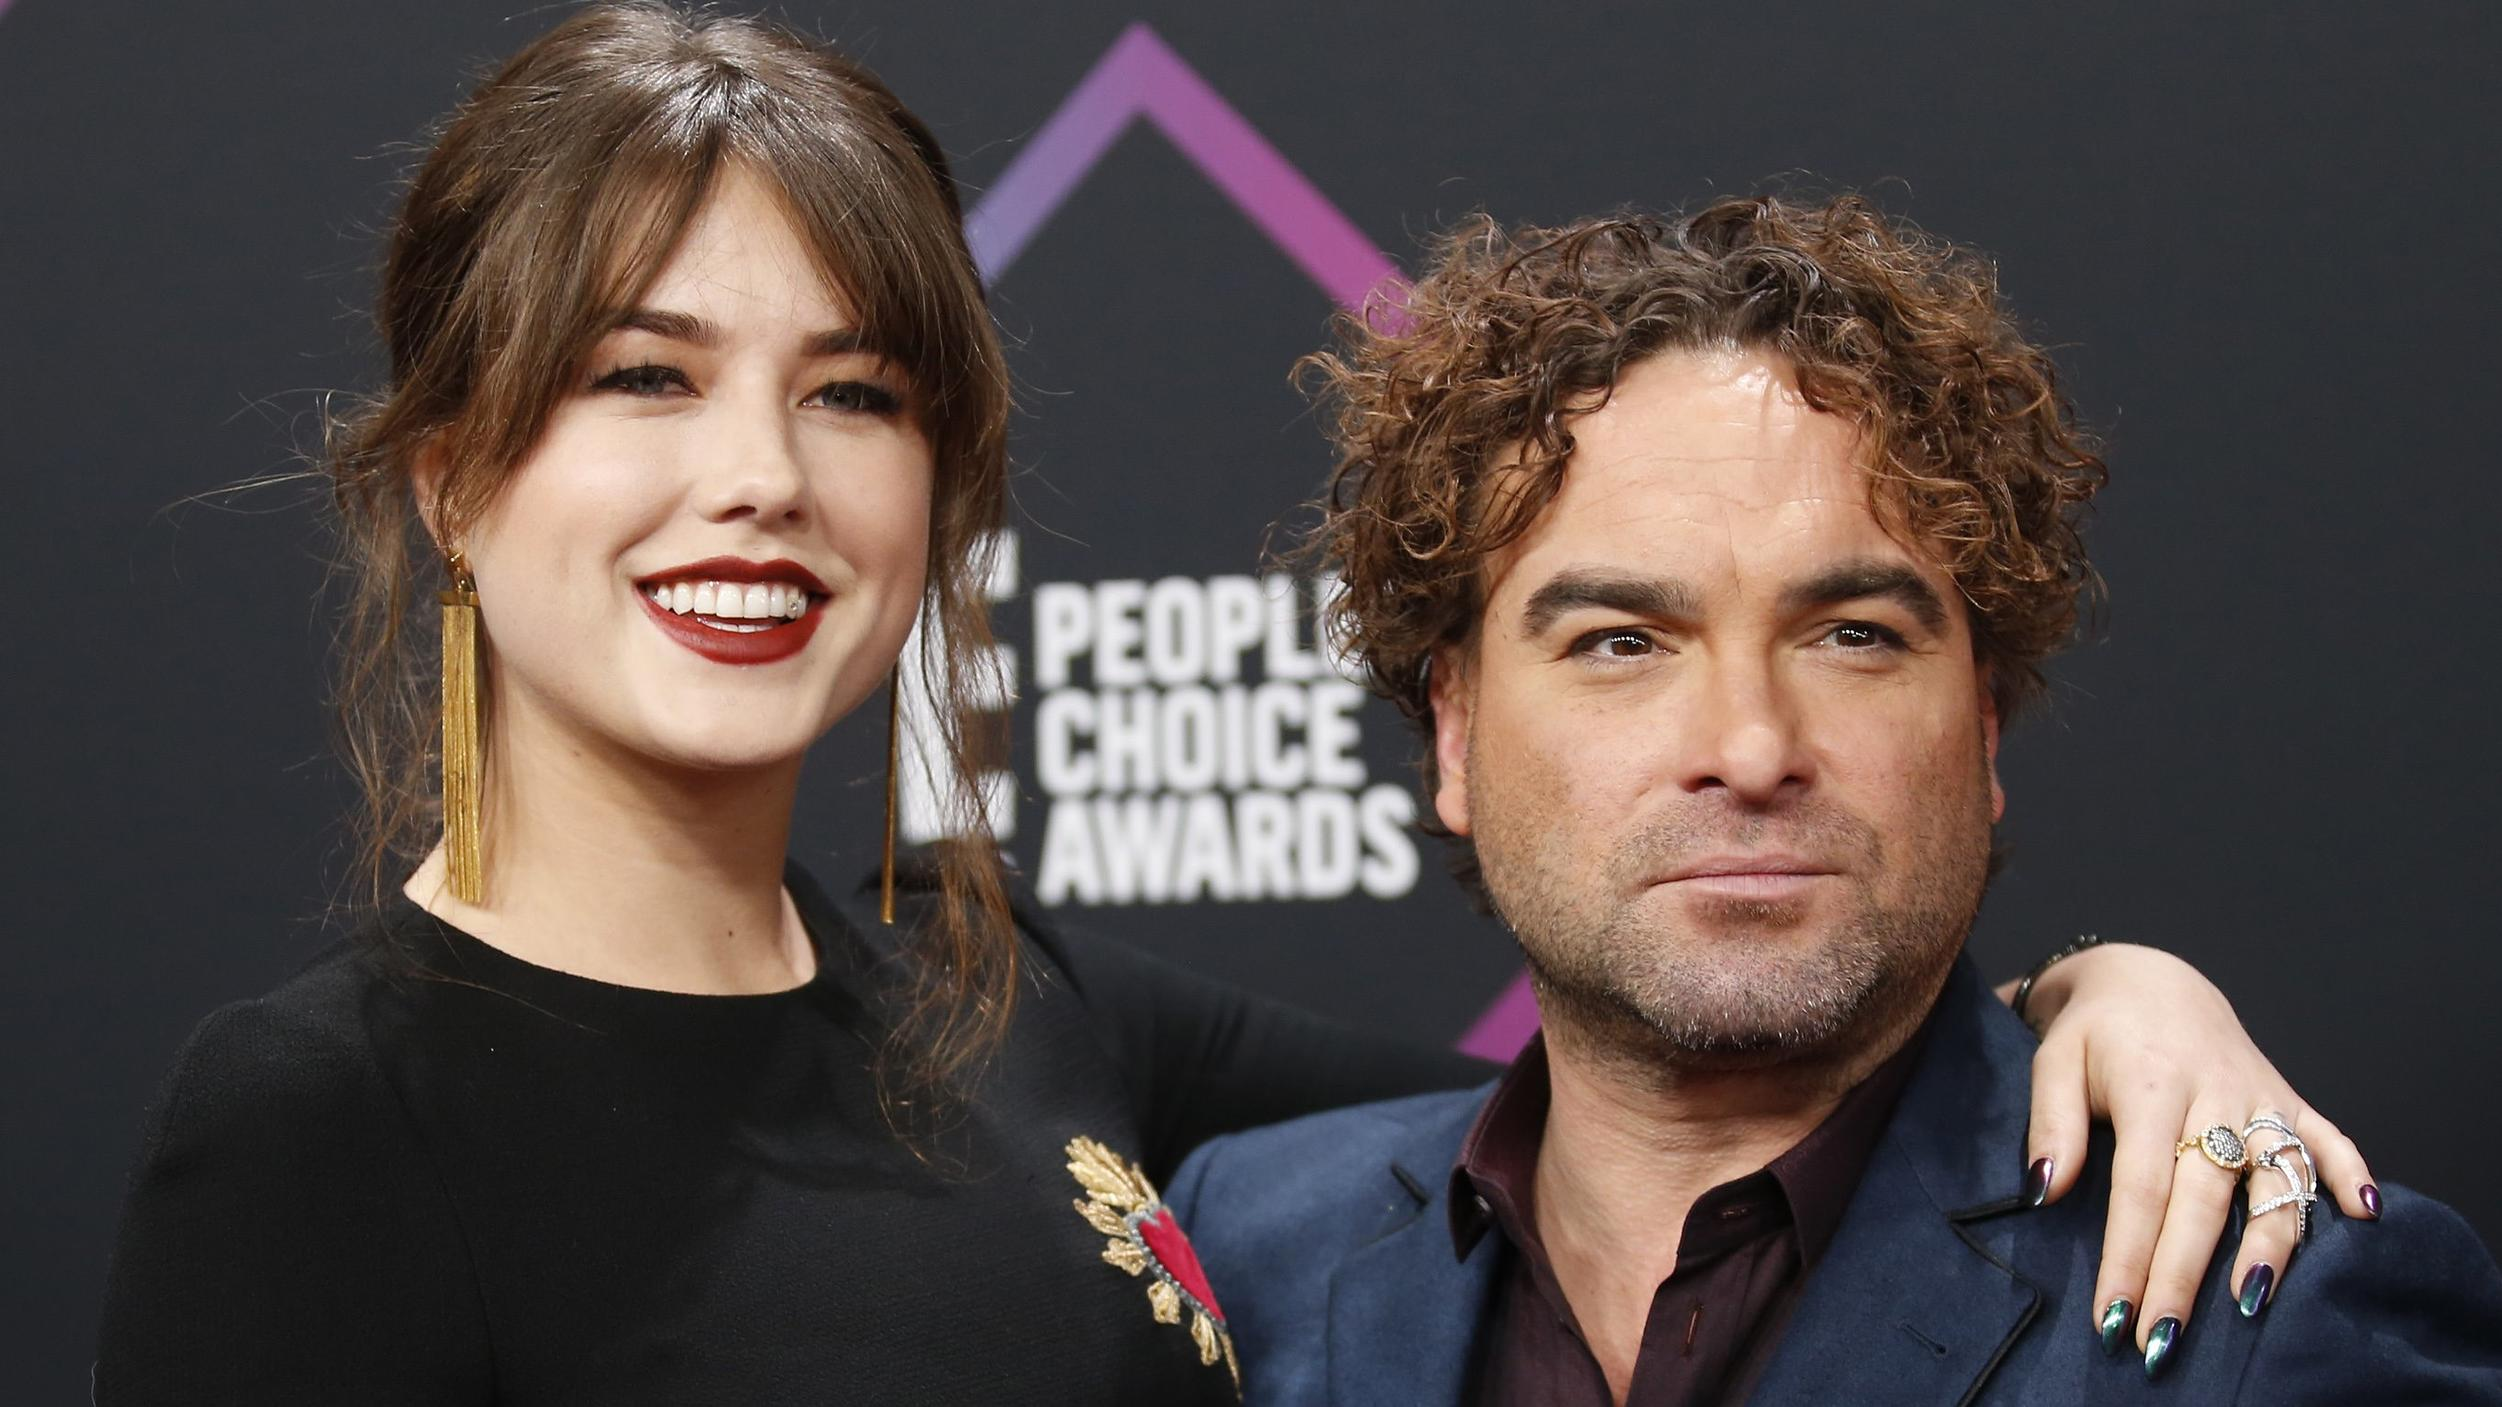 People's Choice Awards - Arrivals - Santa Monica, California, U.S., 11/11/2018 - Johnny Galecki and Alaina Meyer. REUTERS/Danny Moloshok